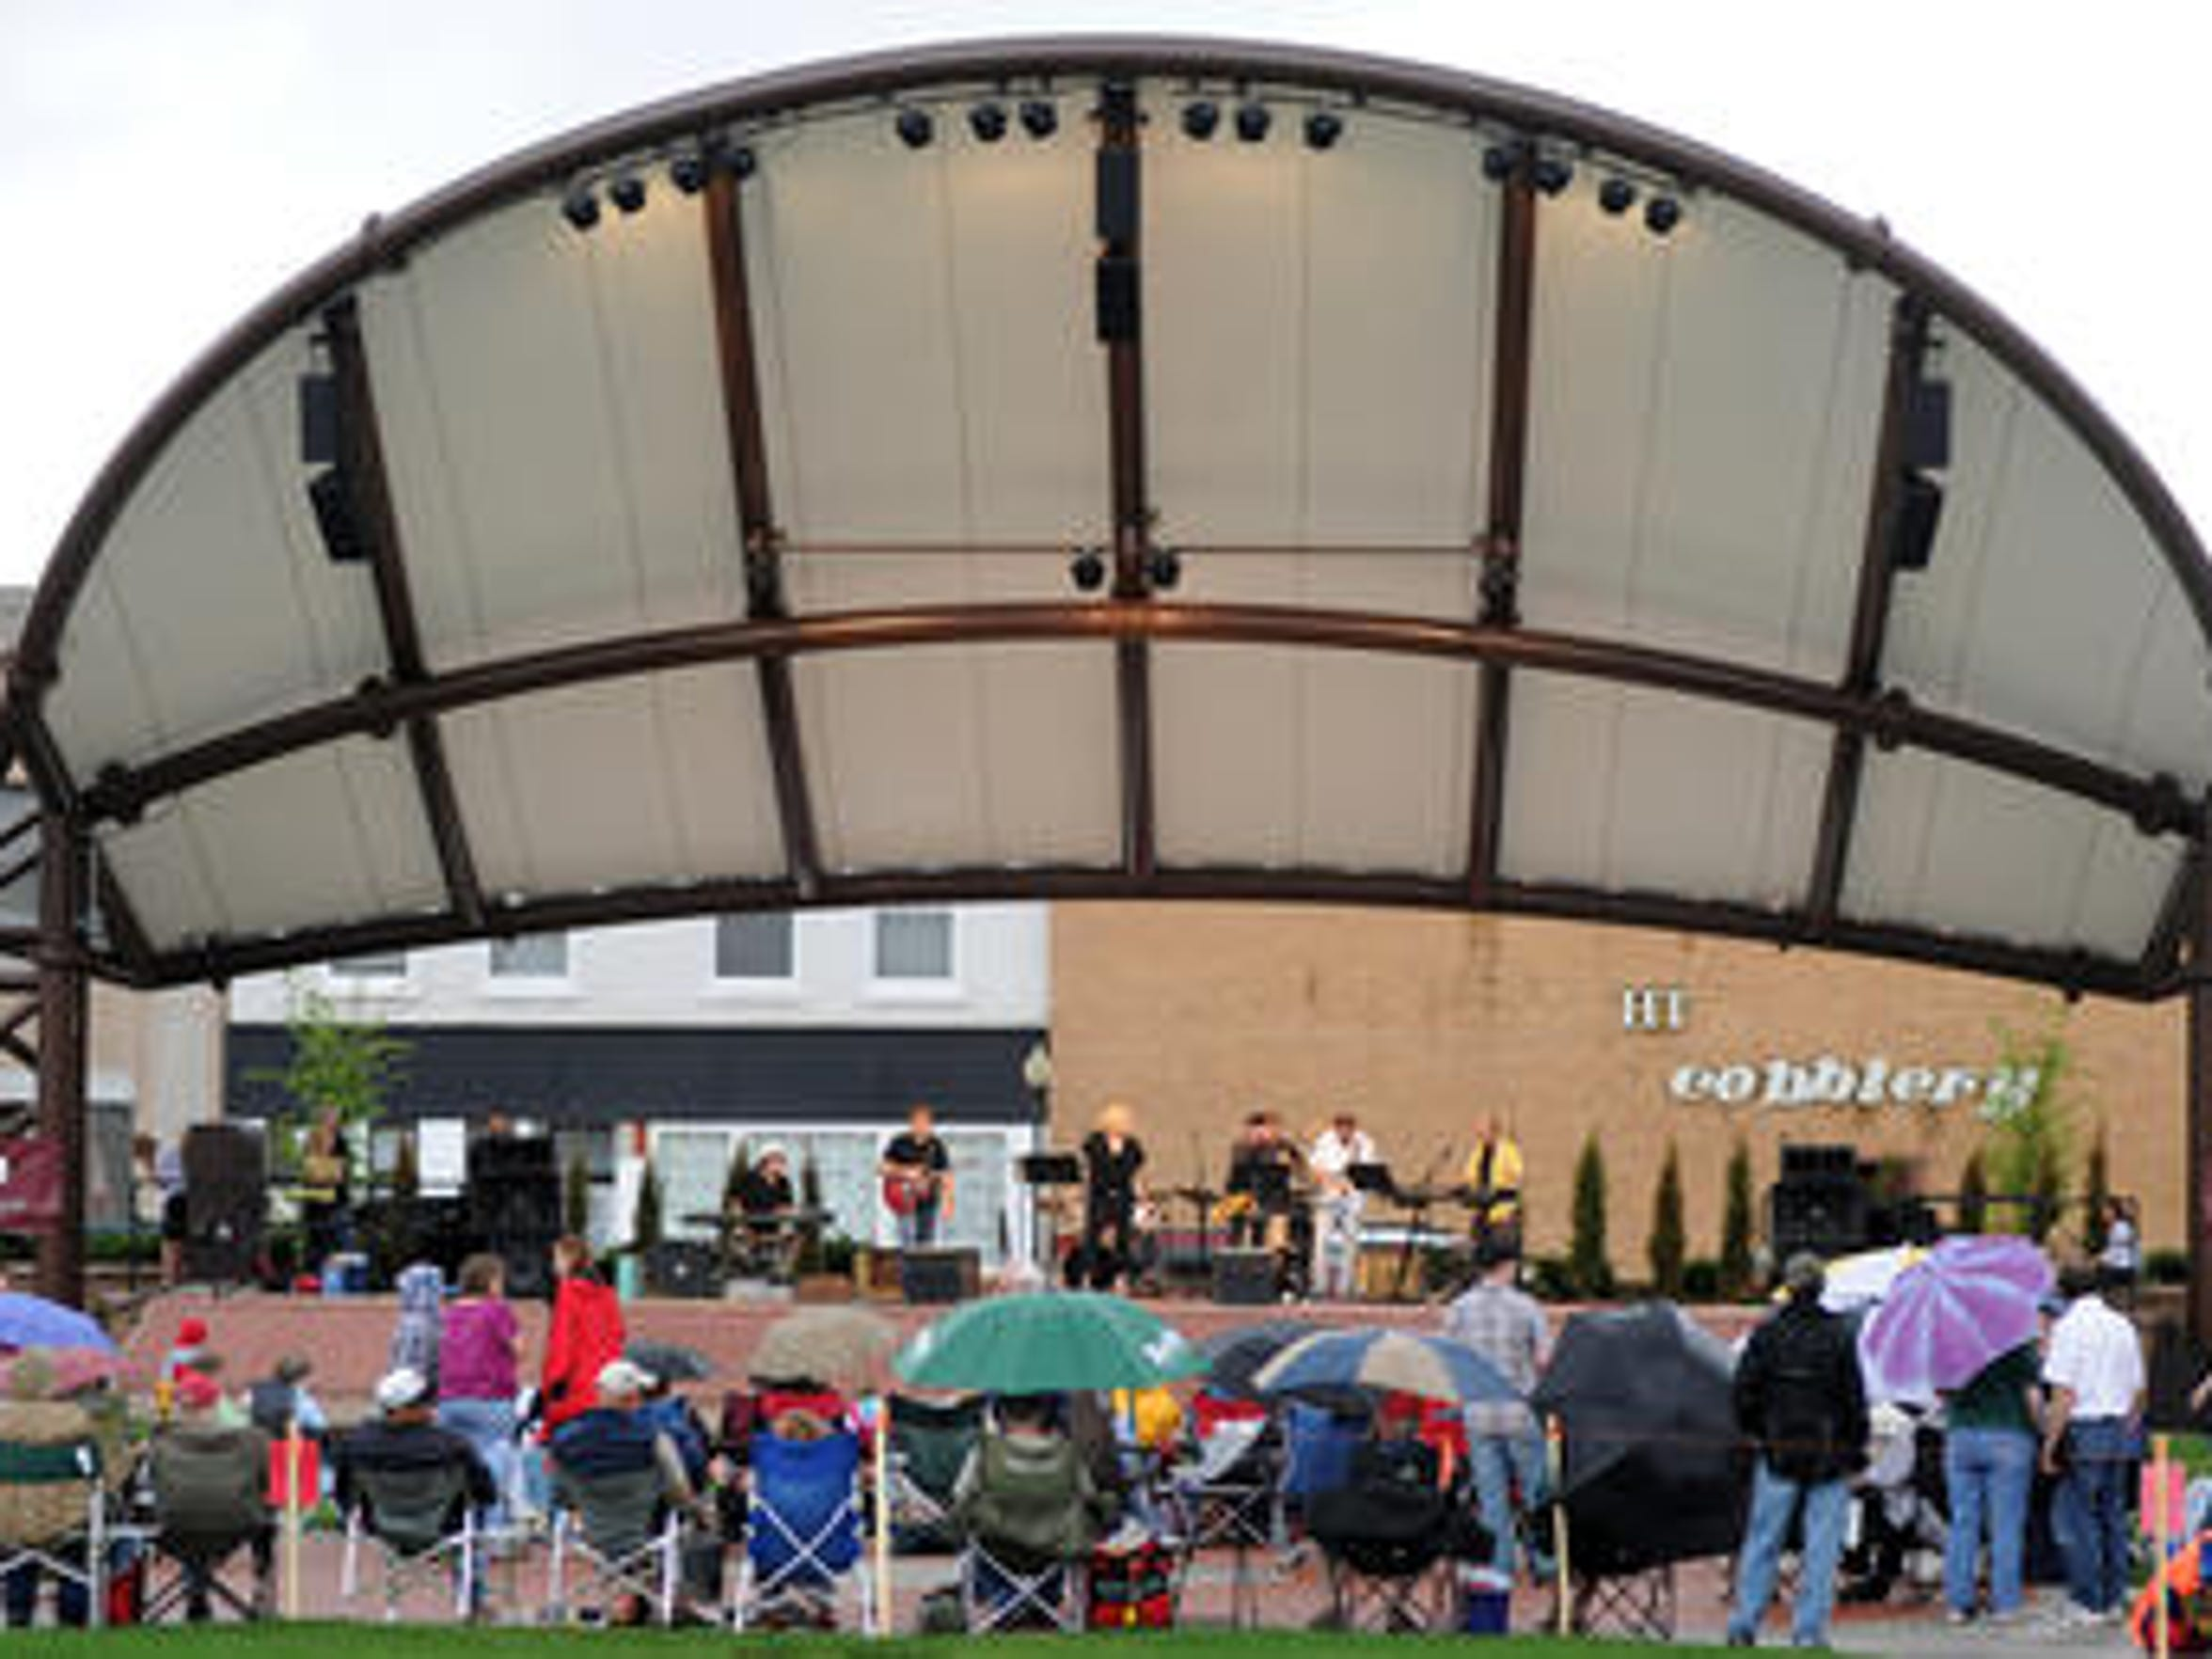 Johnny Altenburgh & The Mo-Tones play at a Concerts on the Square performance by in downtown Wausau in 2011.